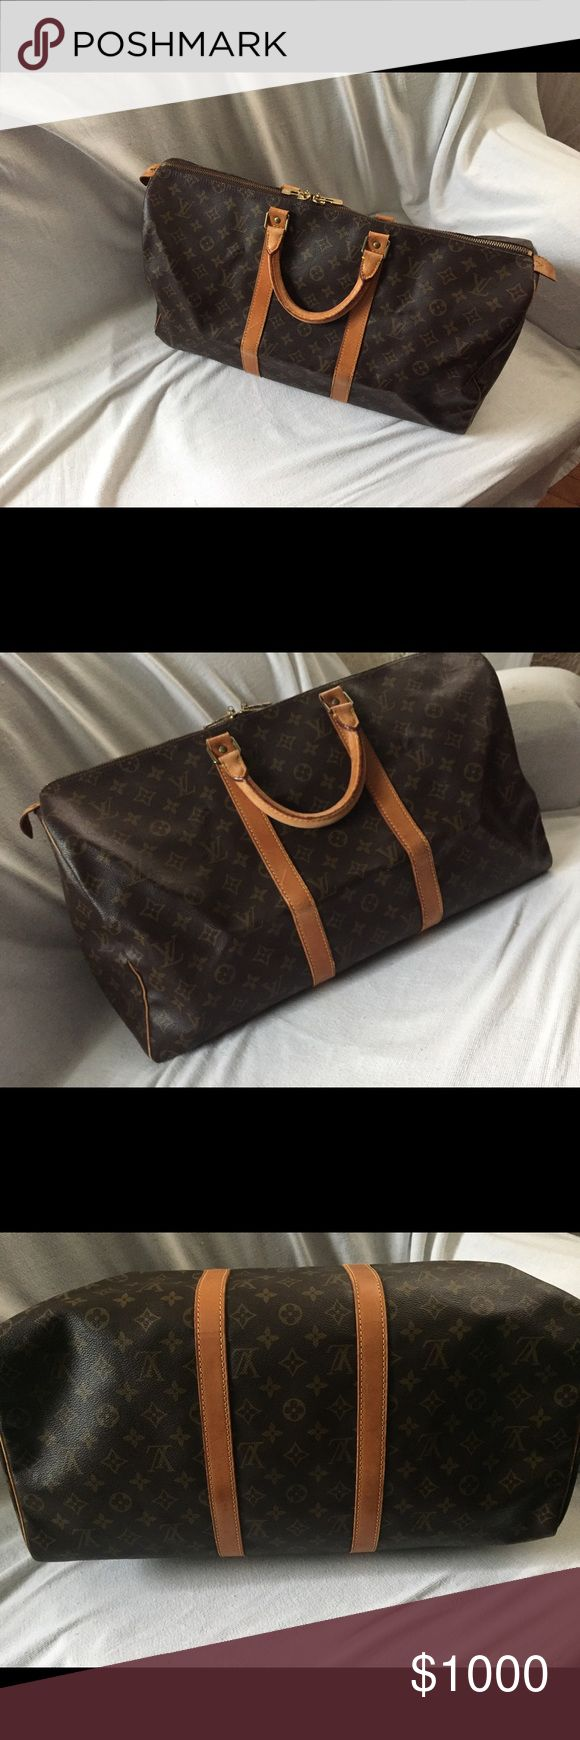 💯 Authentic LOUIS VUITTON 🌹🌹🌹KEEPALL 50🌹🌹🌹 💯 Authentic LOUIS VUITTON 🌹🌹🌹KEEPALL 50🌹🌹🌹 Normal wear, no smell no odors, beautiful piece. Carry on size ✅ travel cabin size ✅💲💲 OPEN TO OFFERS💲💲💚💚💚 DONT WAIT! MAKE AN OFFER NOW 👇👇👇👇👇👇😃 Louis Vuitton Bags Travel Bags